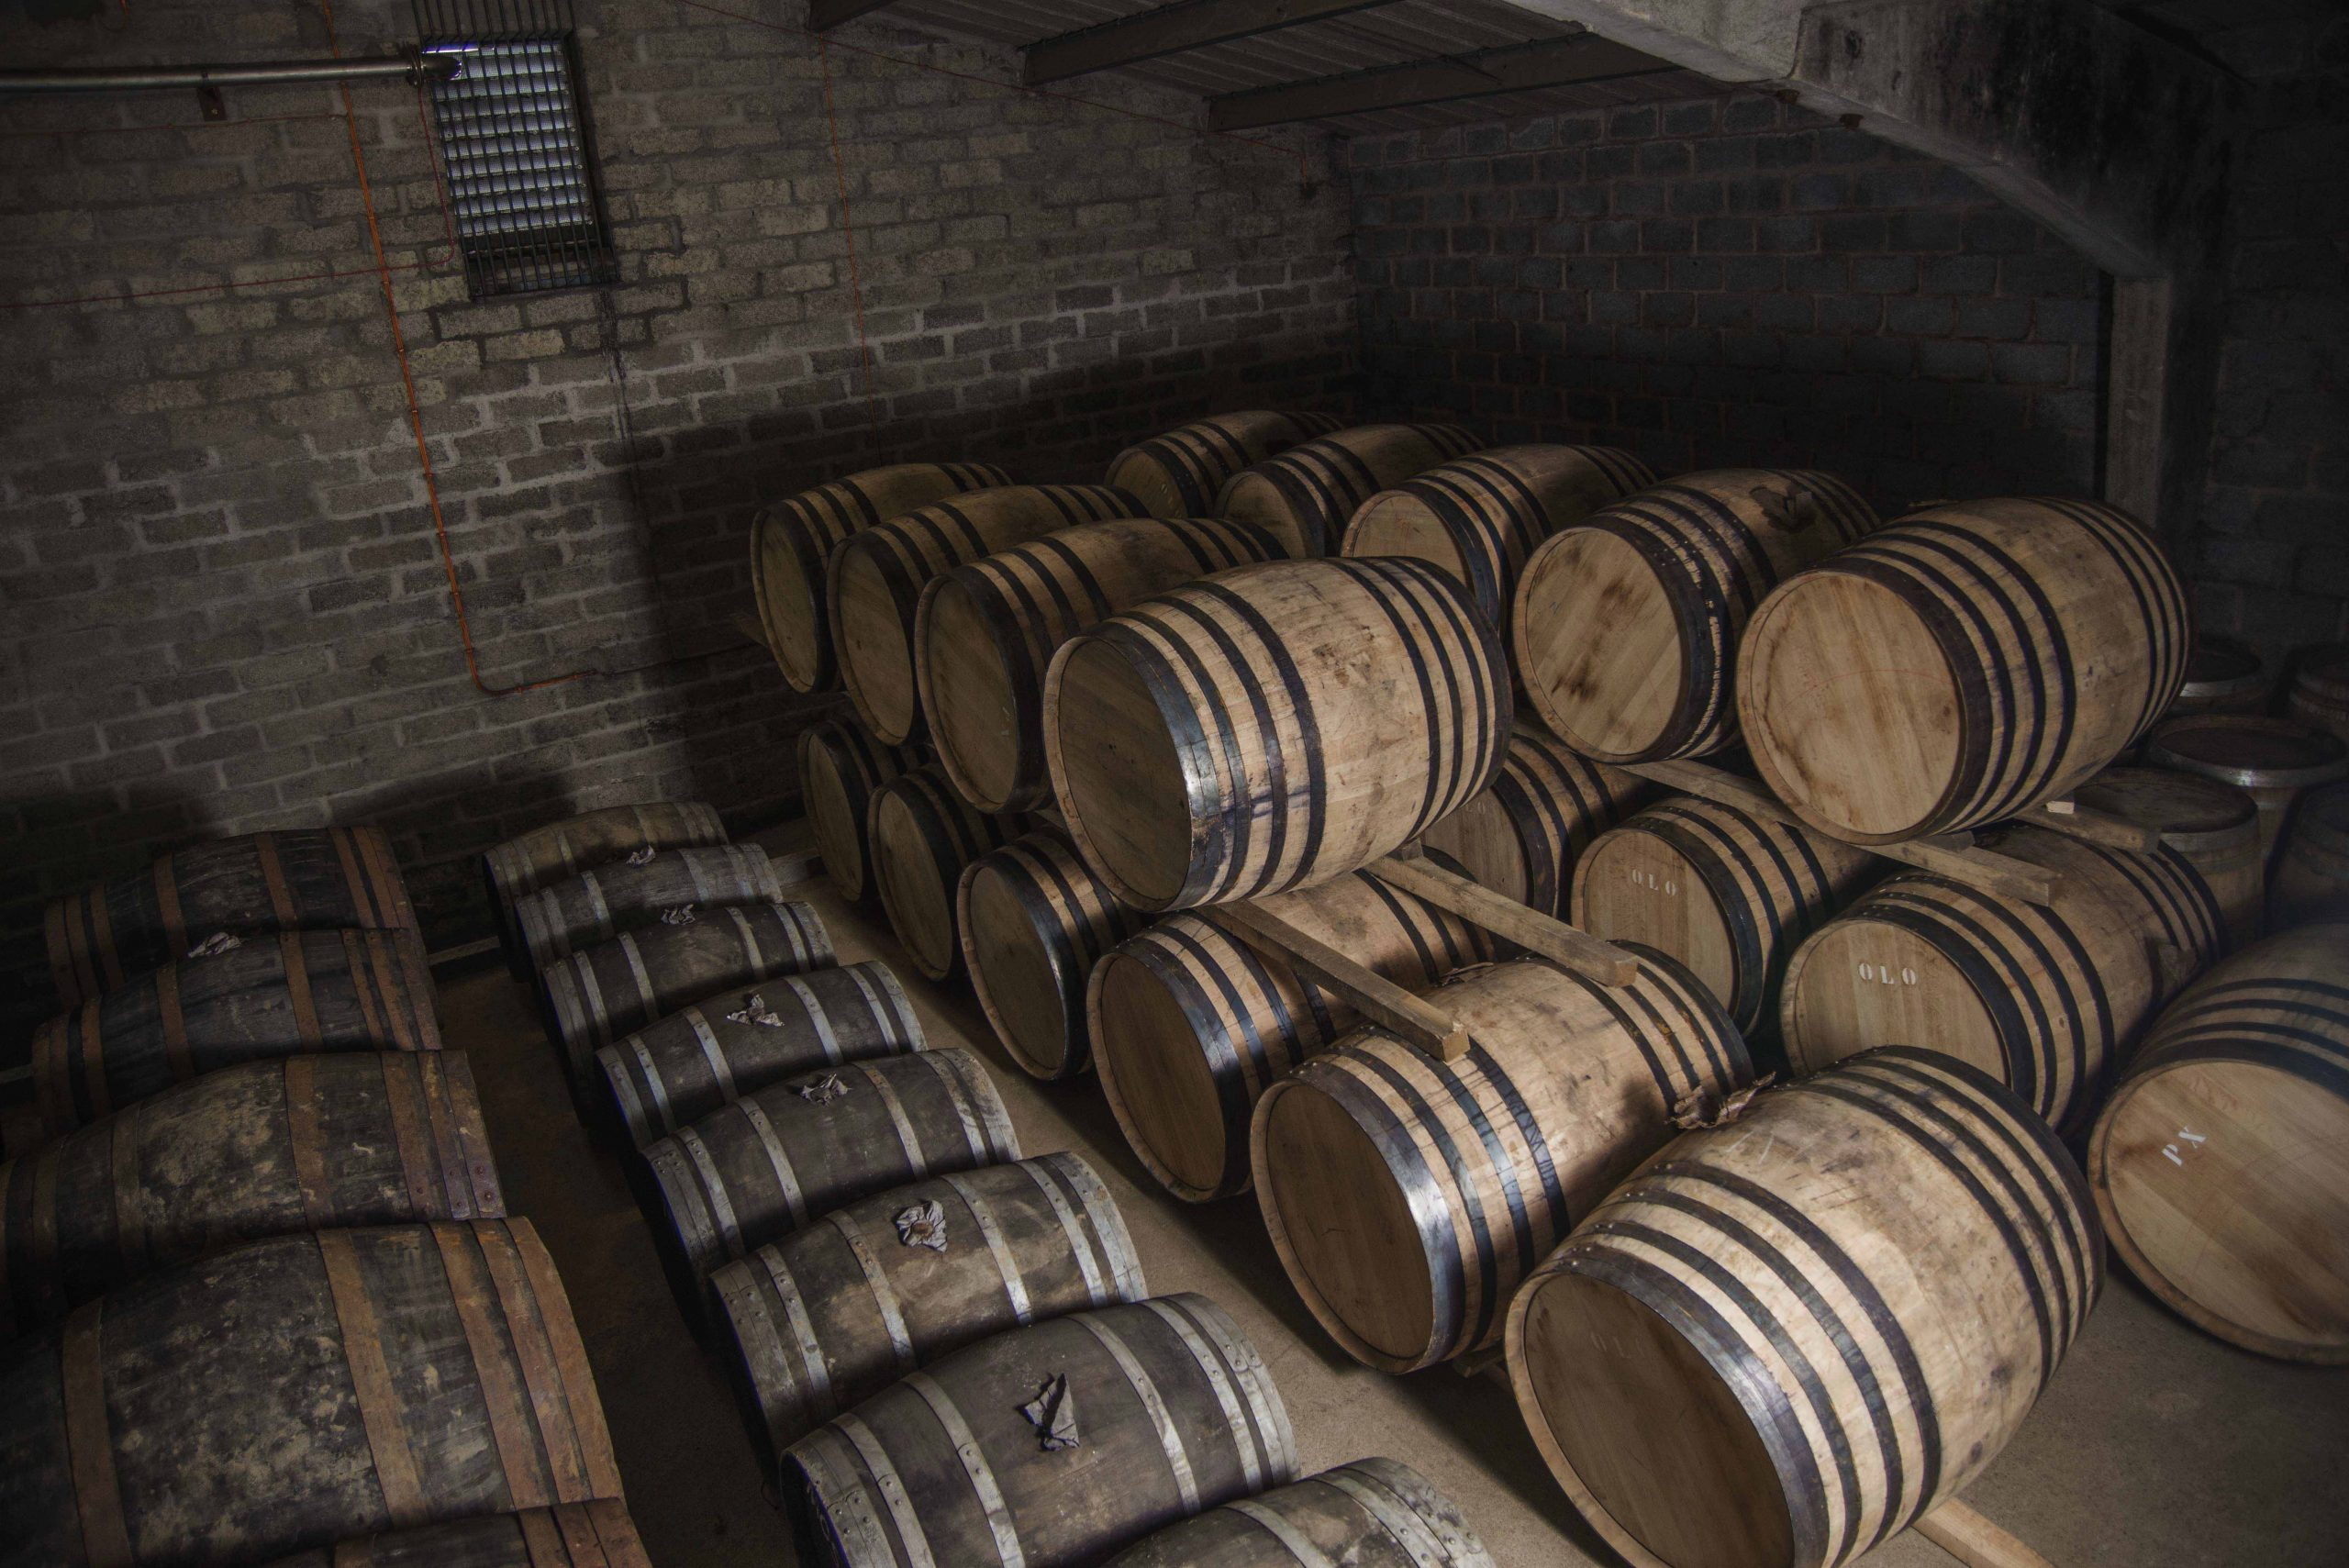 GlenAllachie Casks in Dunnage Warehouse